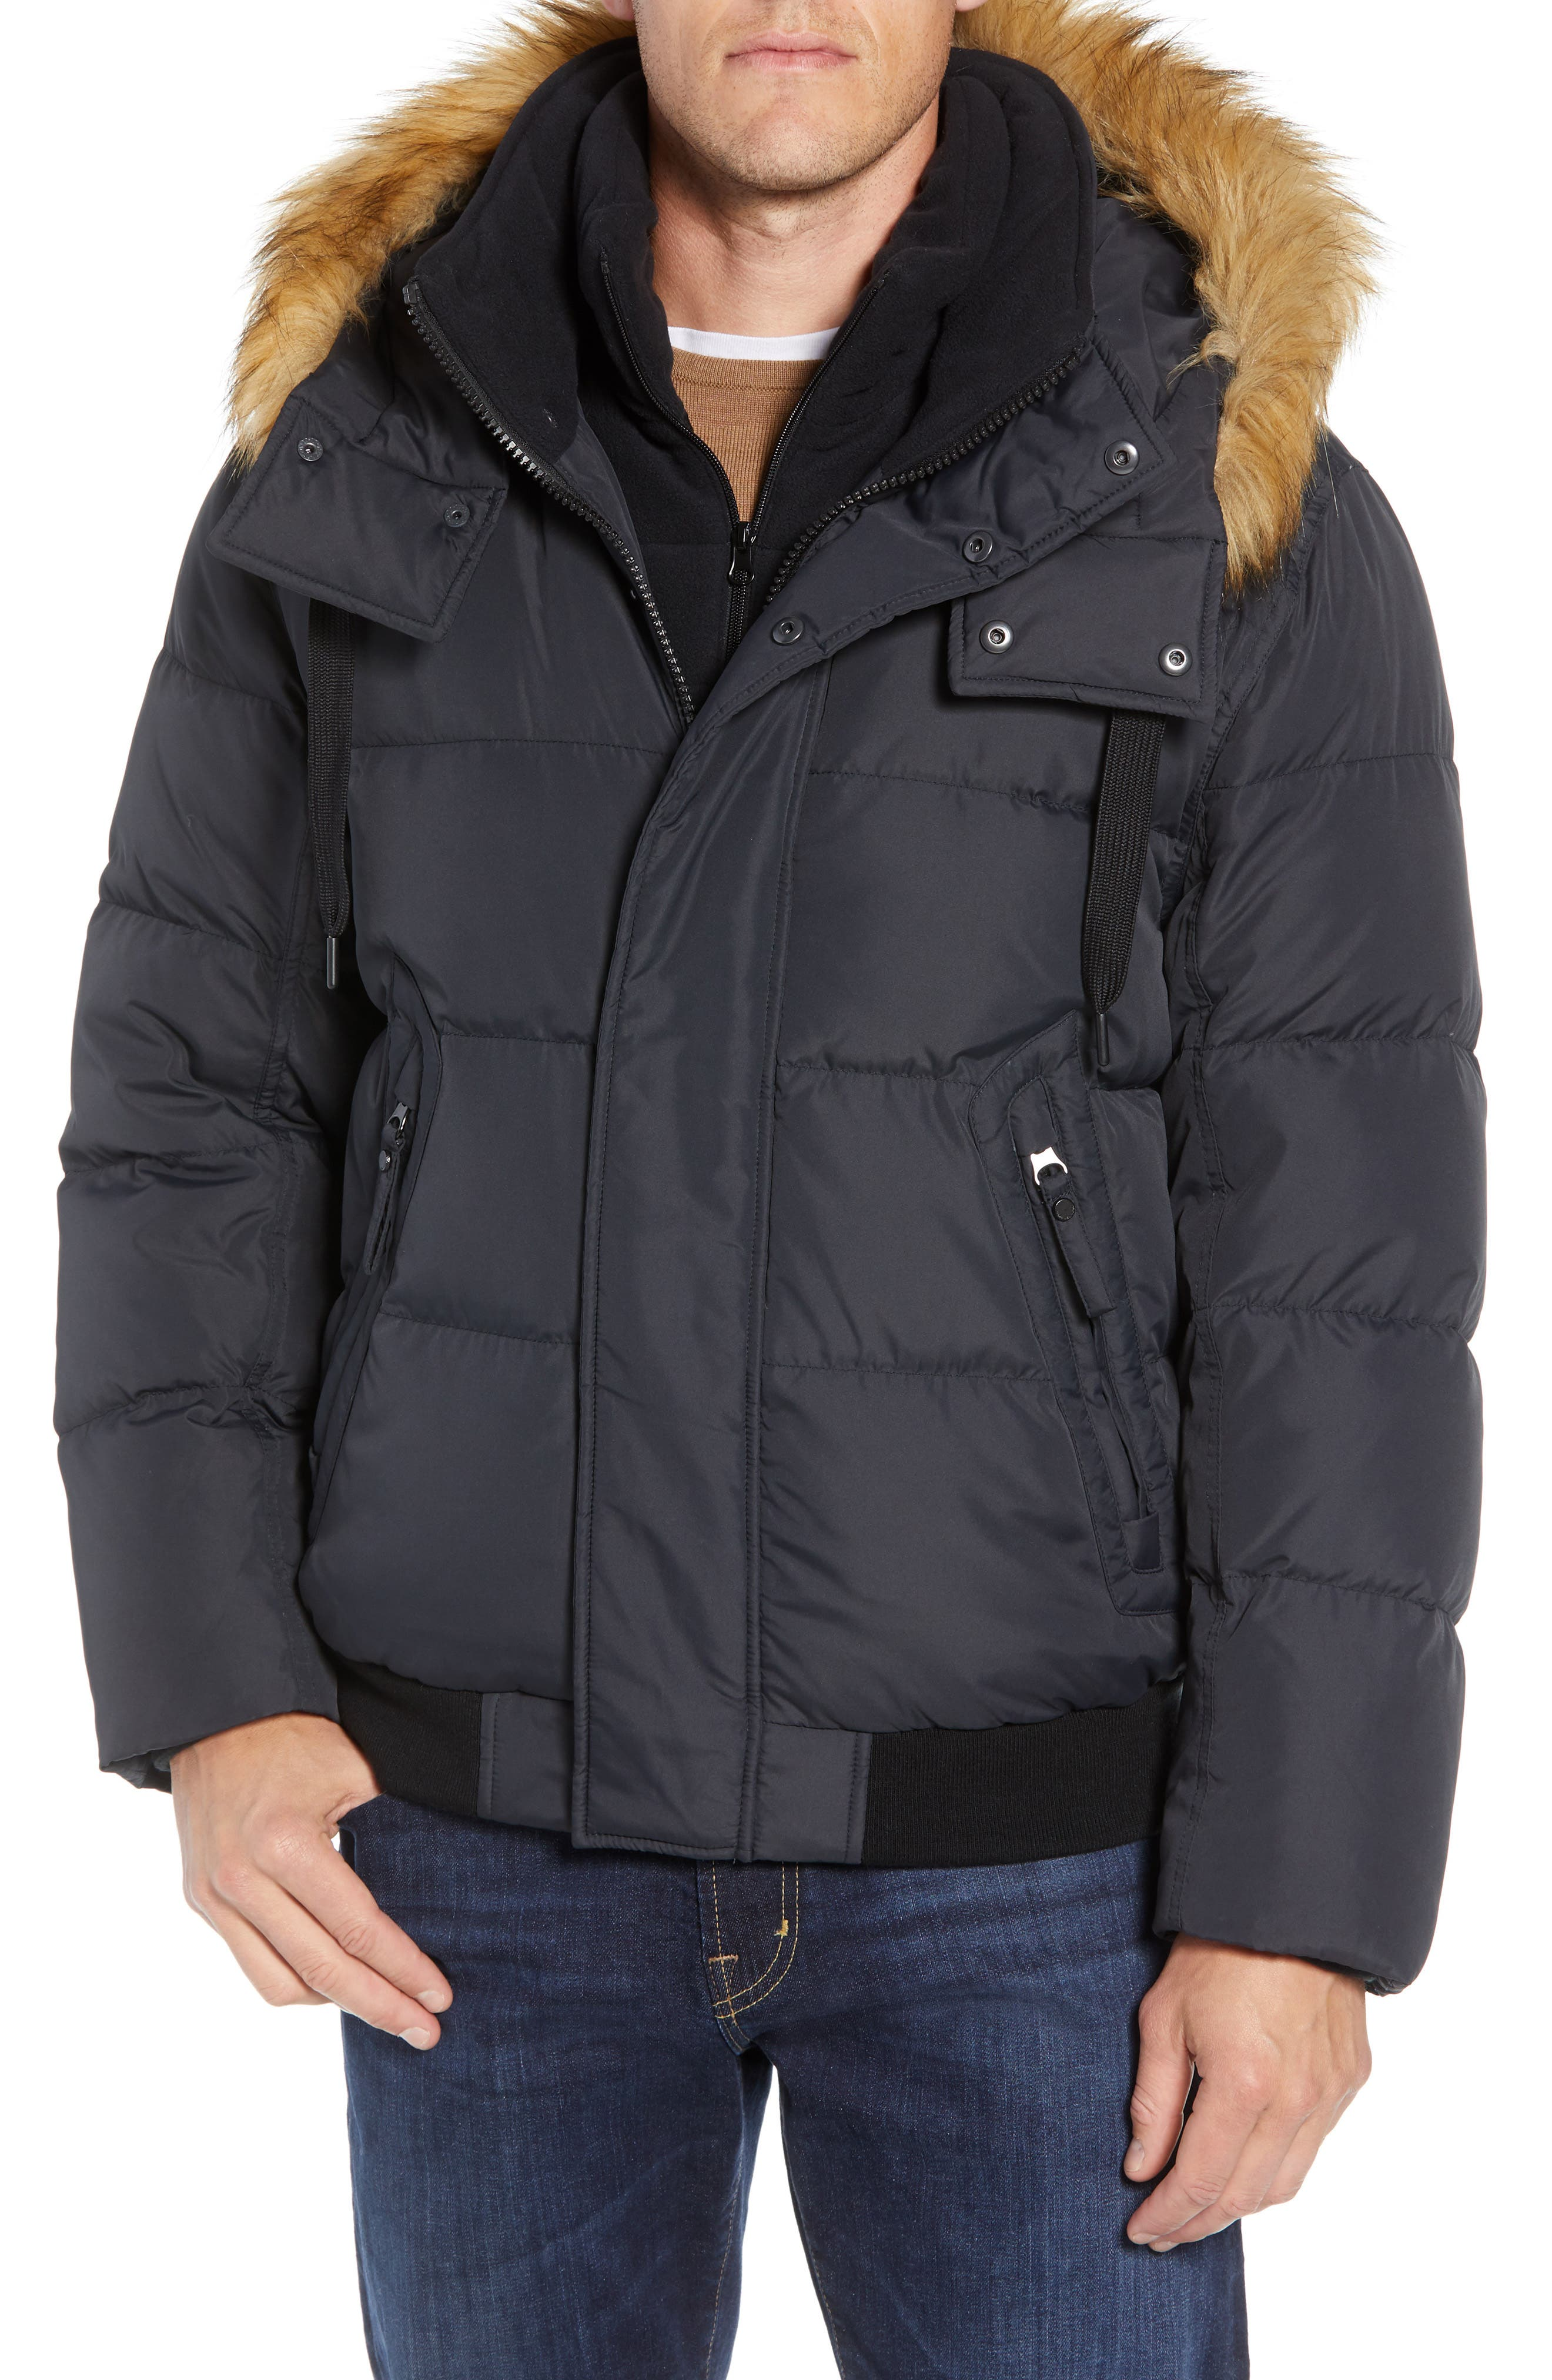 Clermont Insulated Bomber Jacket,                         Main,                         color, BLACK